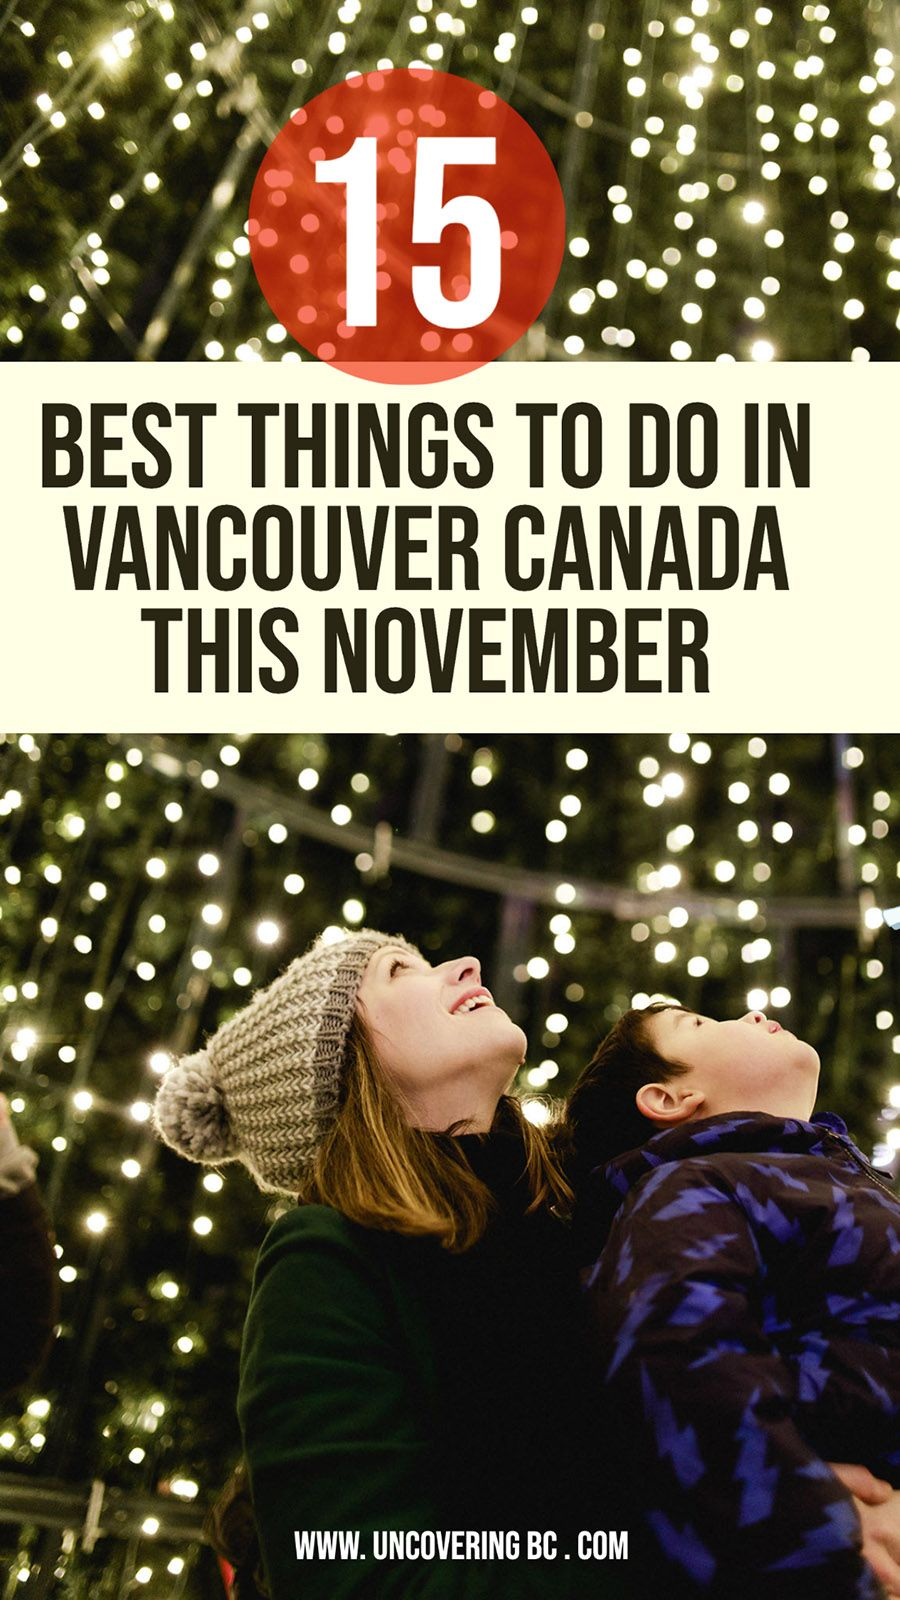 Canada Christmas Climbing In 2020 Vancouver Travel Canada Travel Vancouver Christmas Market